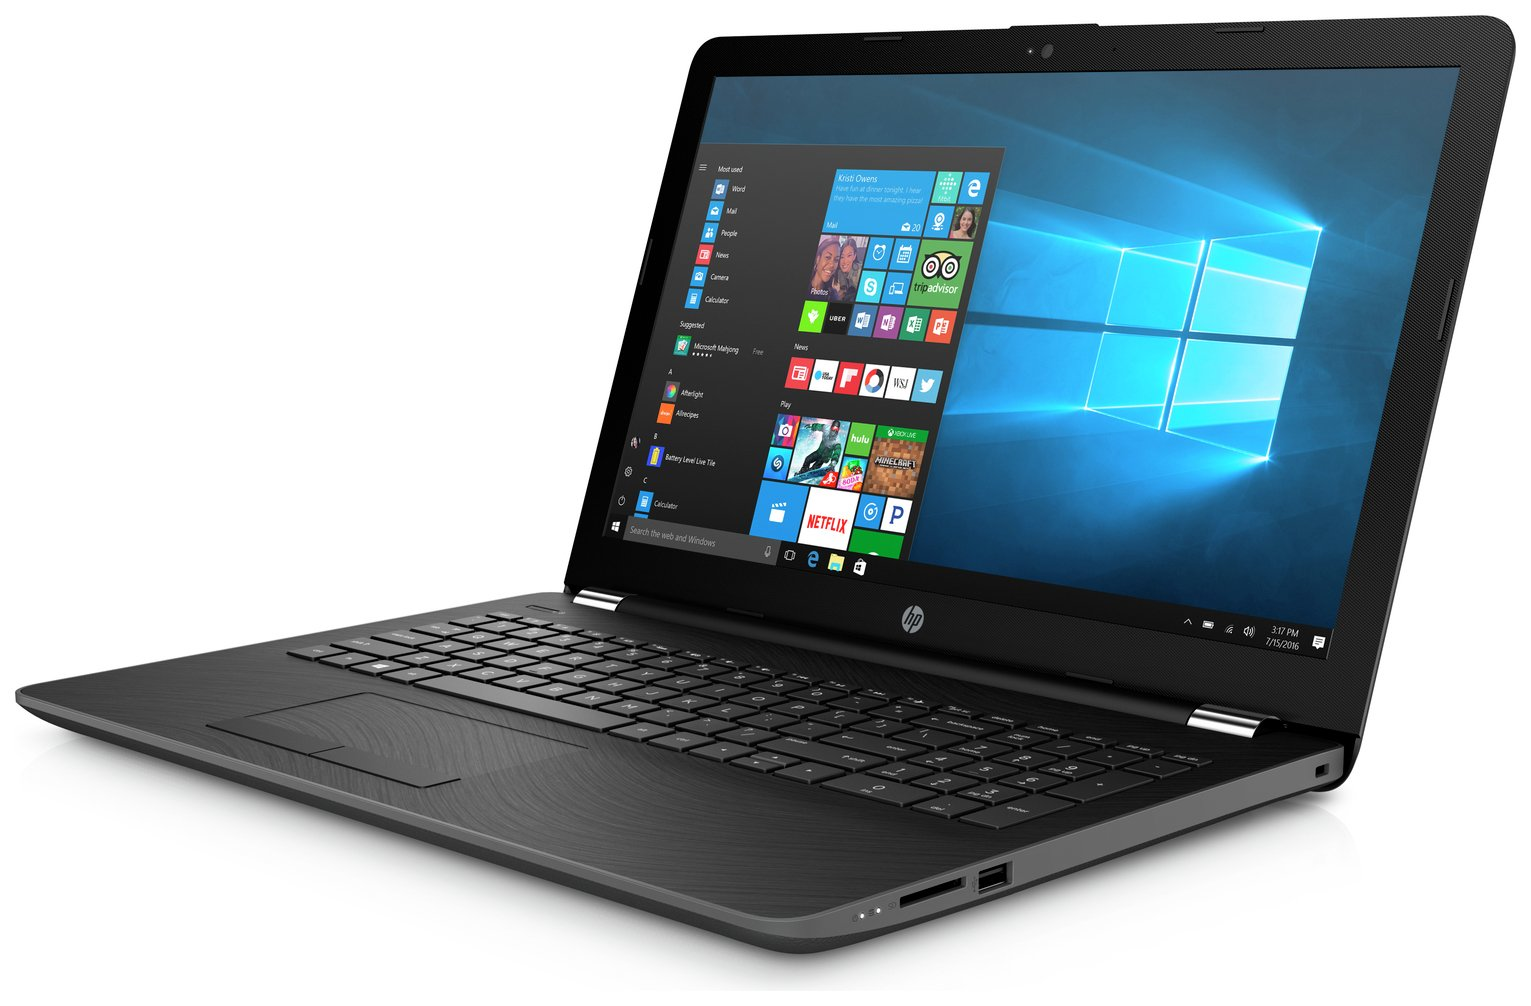 laptops v s hand held devices in b schools Best laptops for 2018 our editors hand-picked these products based on our tests and reviews if you use our links to buy, we may get a commission.